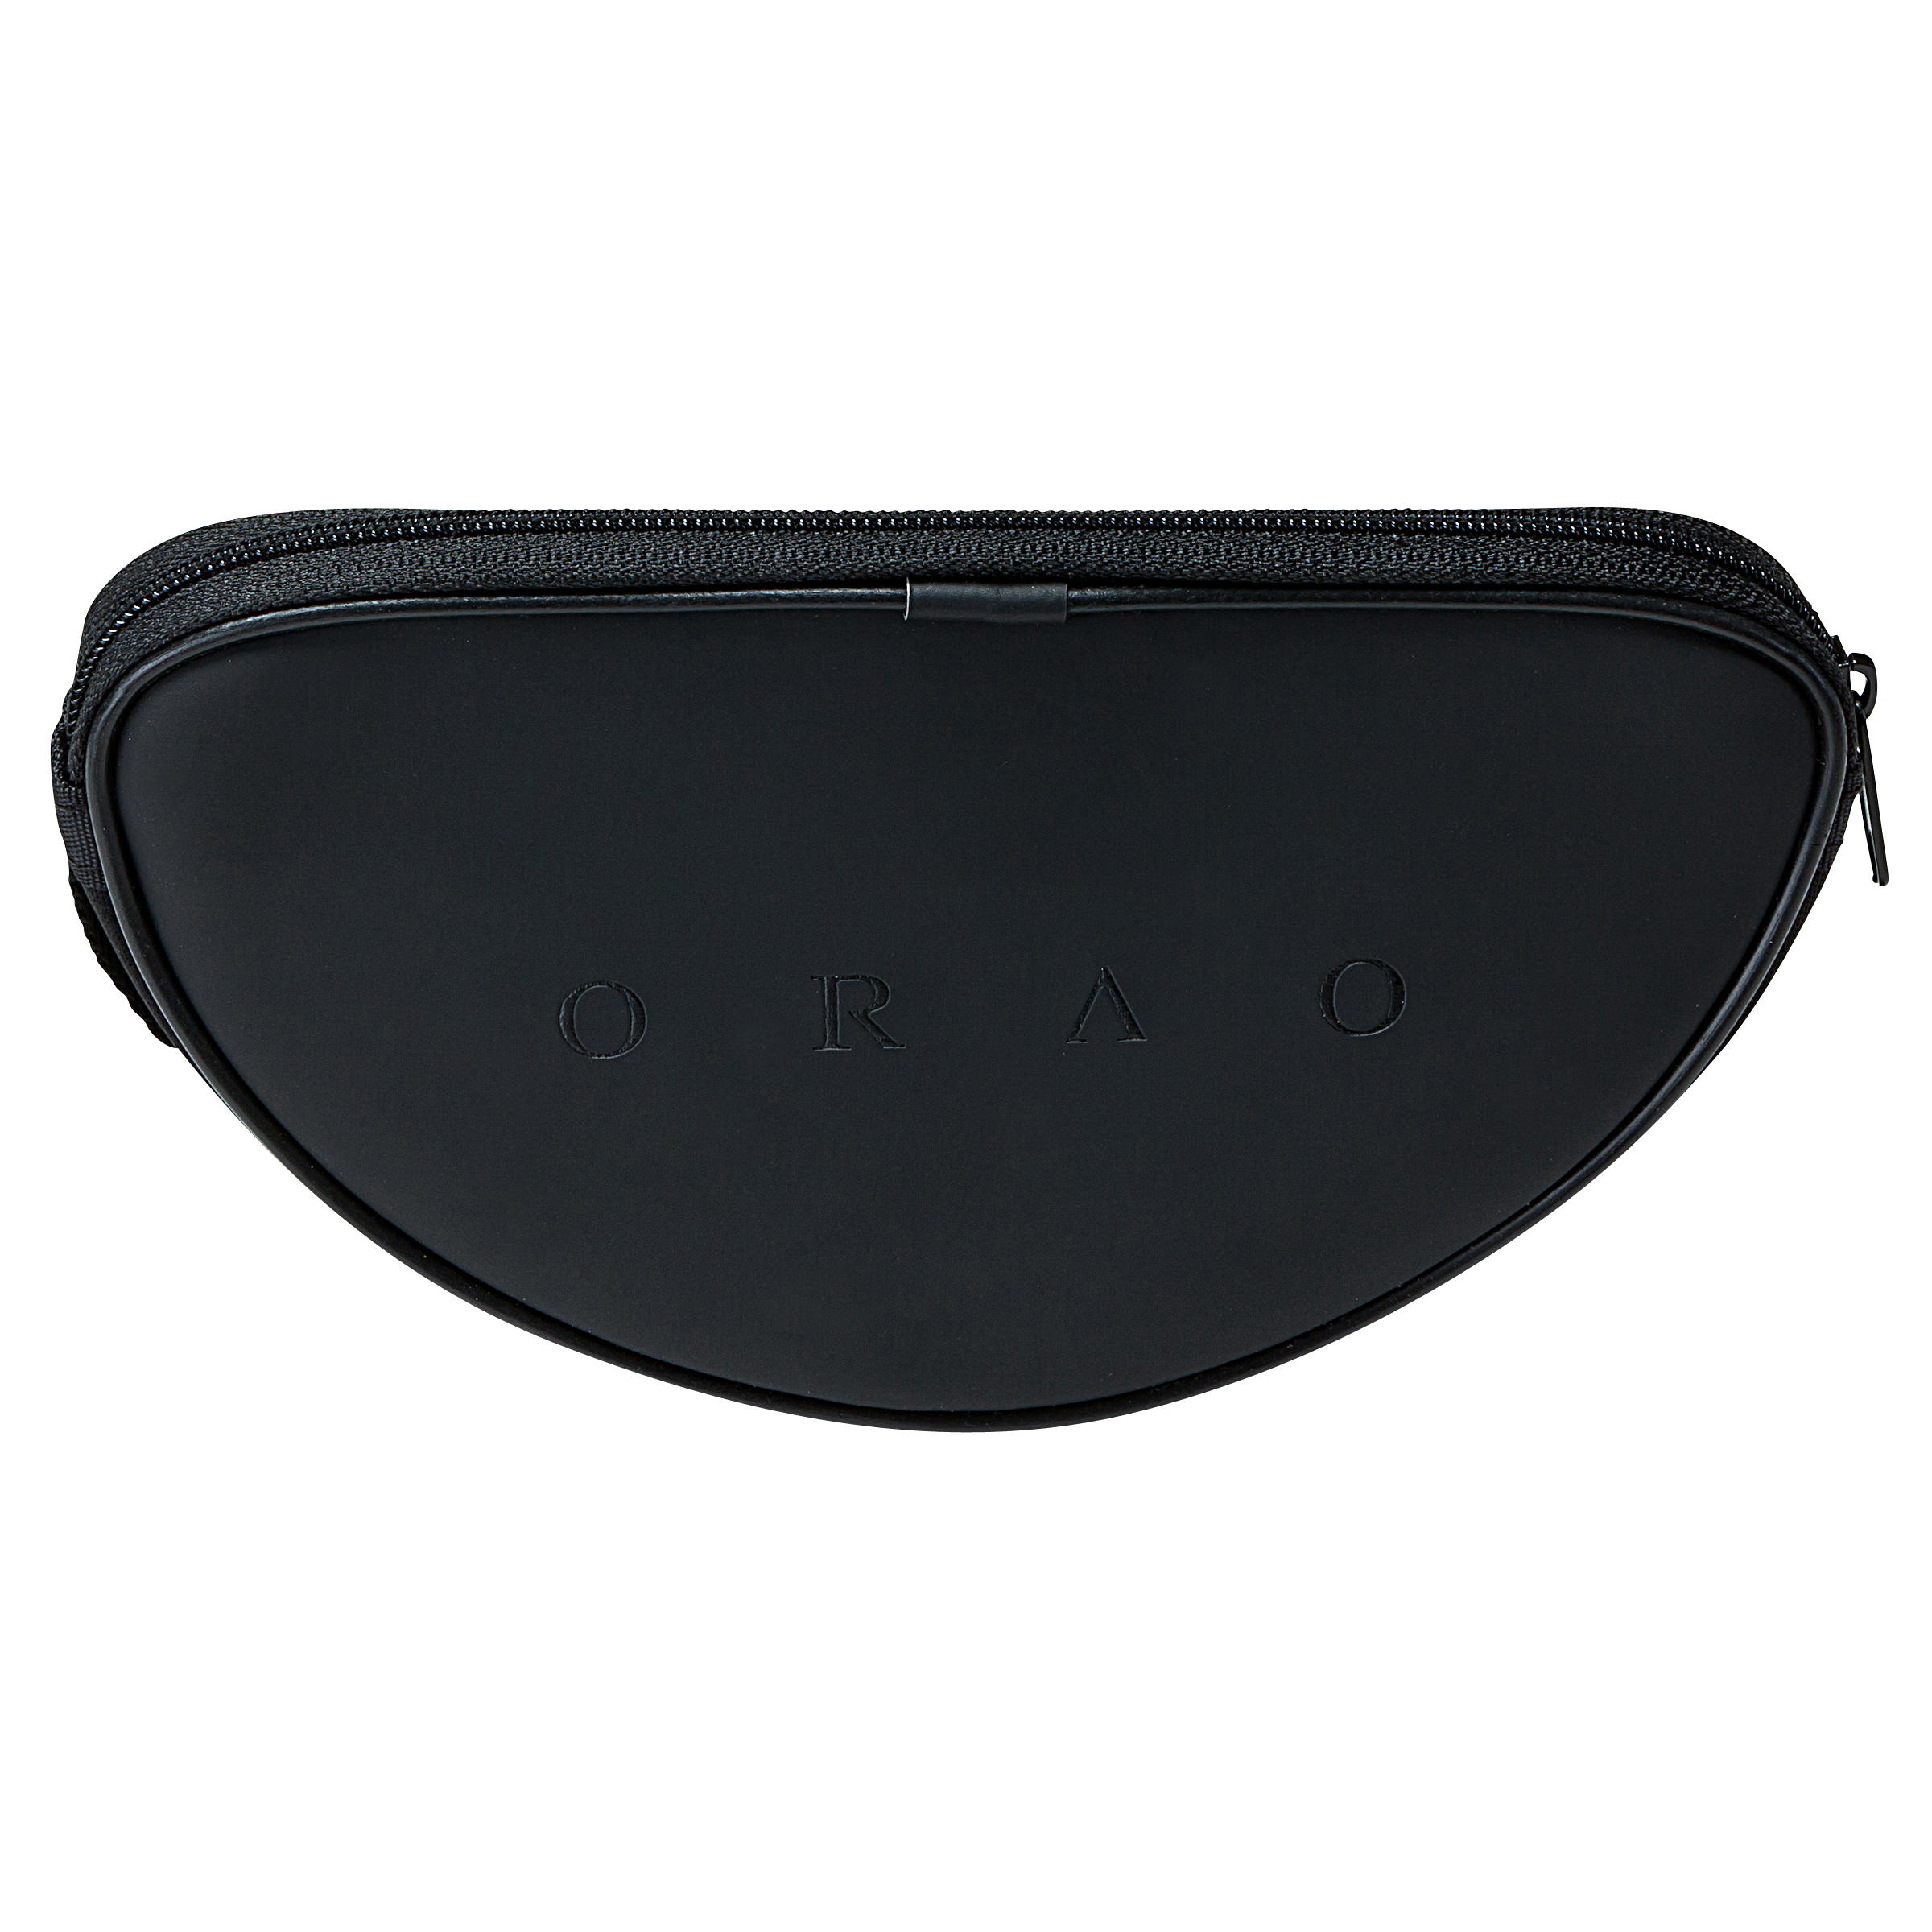 Case 500 Semi-Rigid Neoprene Case for Glasses - Black